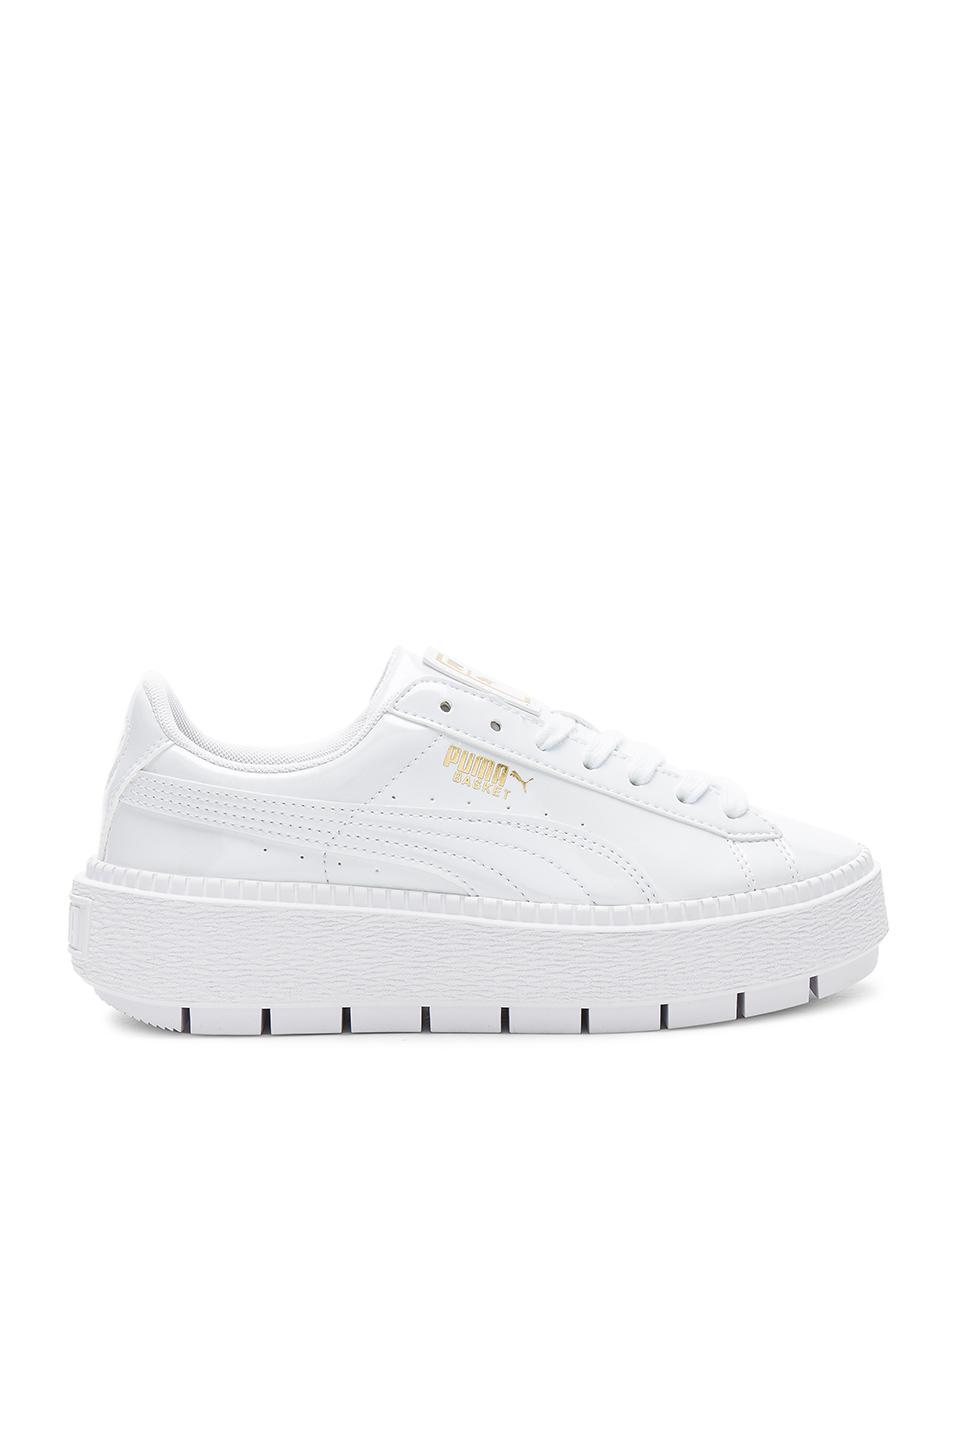 PUMA Basket Platform Trace Sneakers Metallic Gold Leather  cost charm 7660b  65f5e Gallery. Previously sold at REVOLVE · Womens Platform Sneakers ... f00582f05